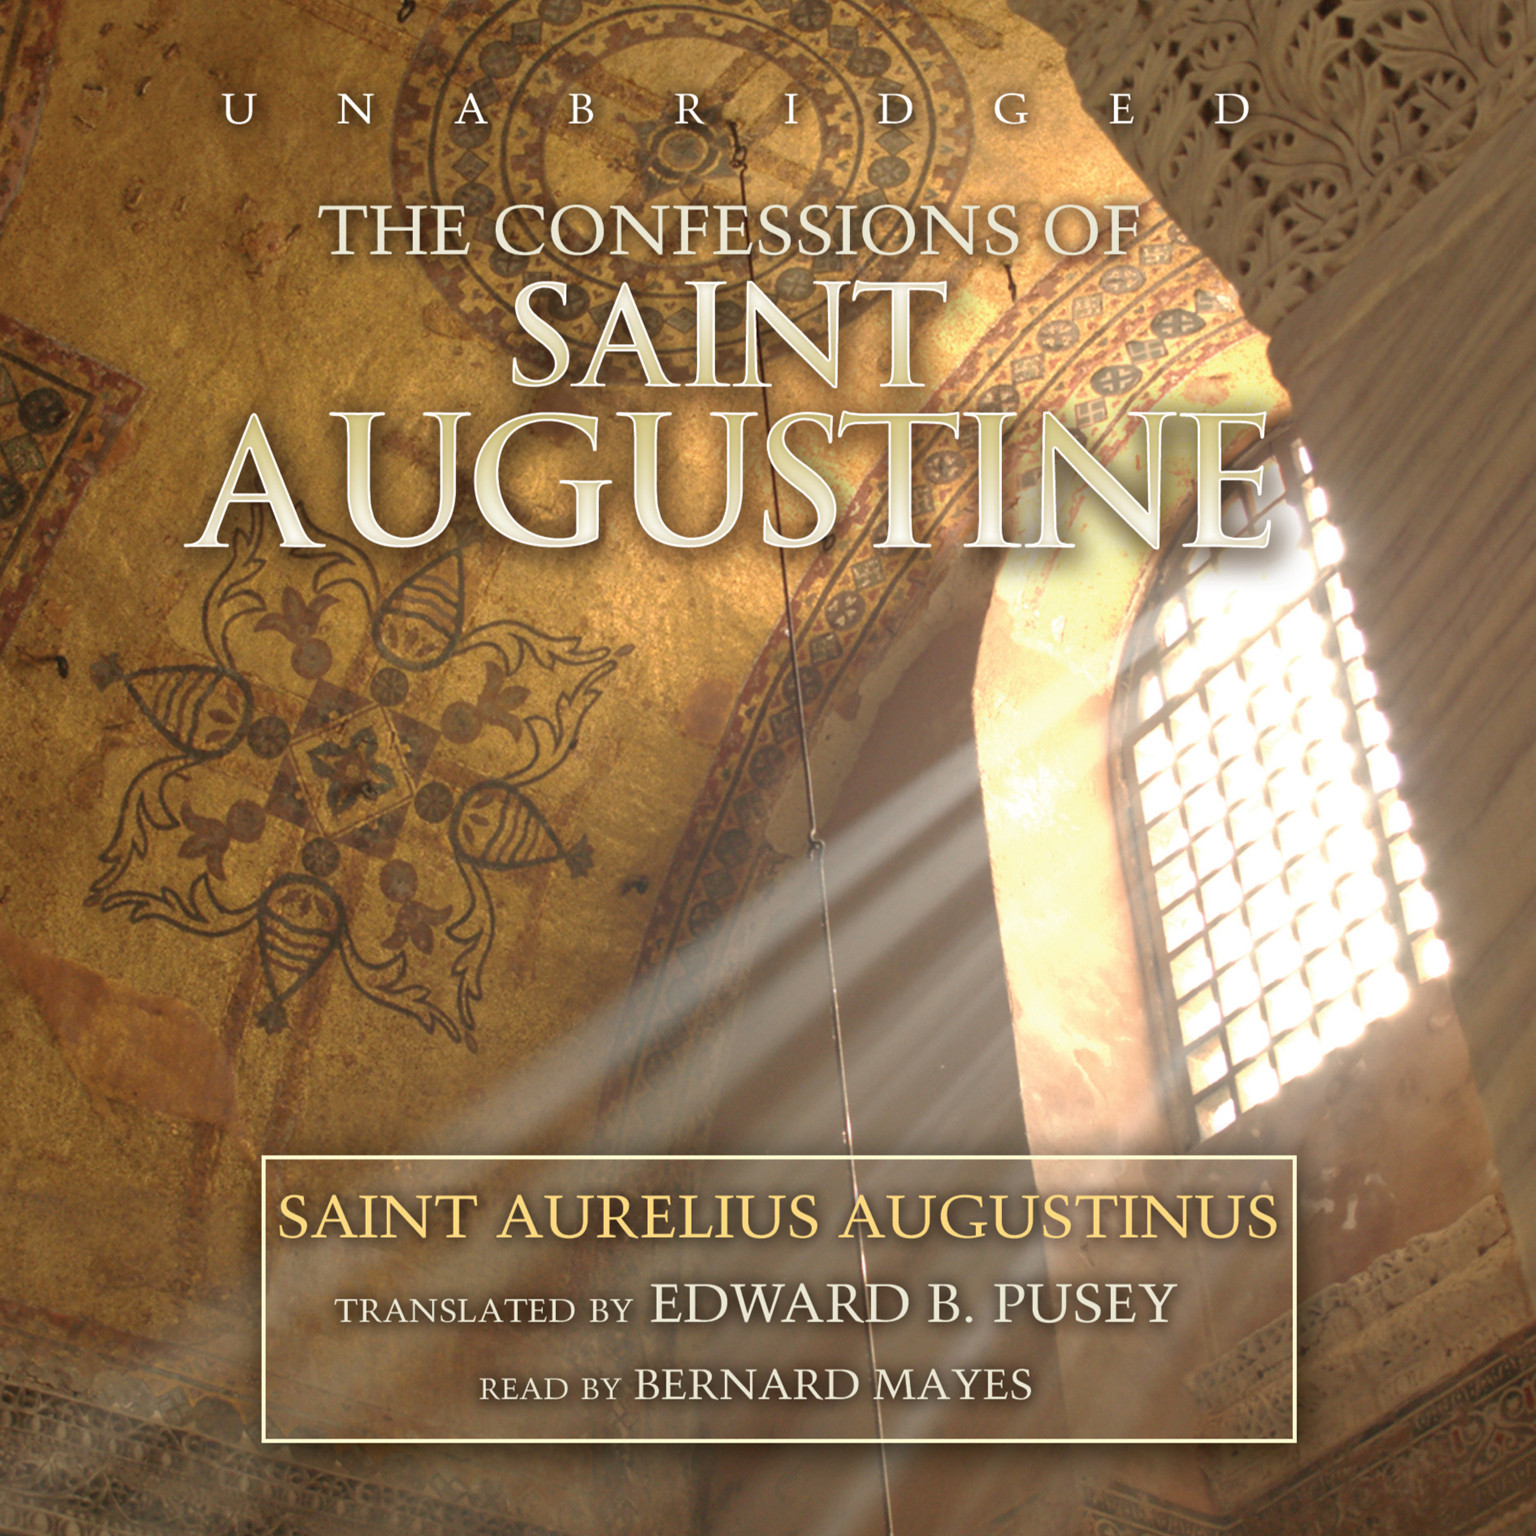 a biography of saint augustine and description of his ideas about evil St augustine description bishop of hippo, but it is the very life god uses to convey his singular and unequaled love for each restless heart a constant theme in the early christian theology was the idea that goodness unifies while evil scatters.